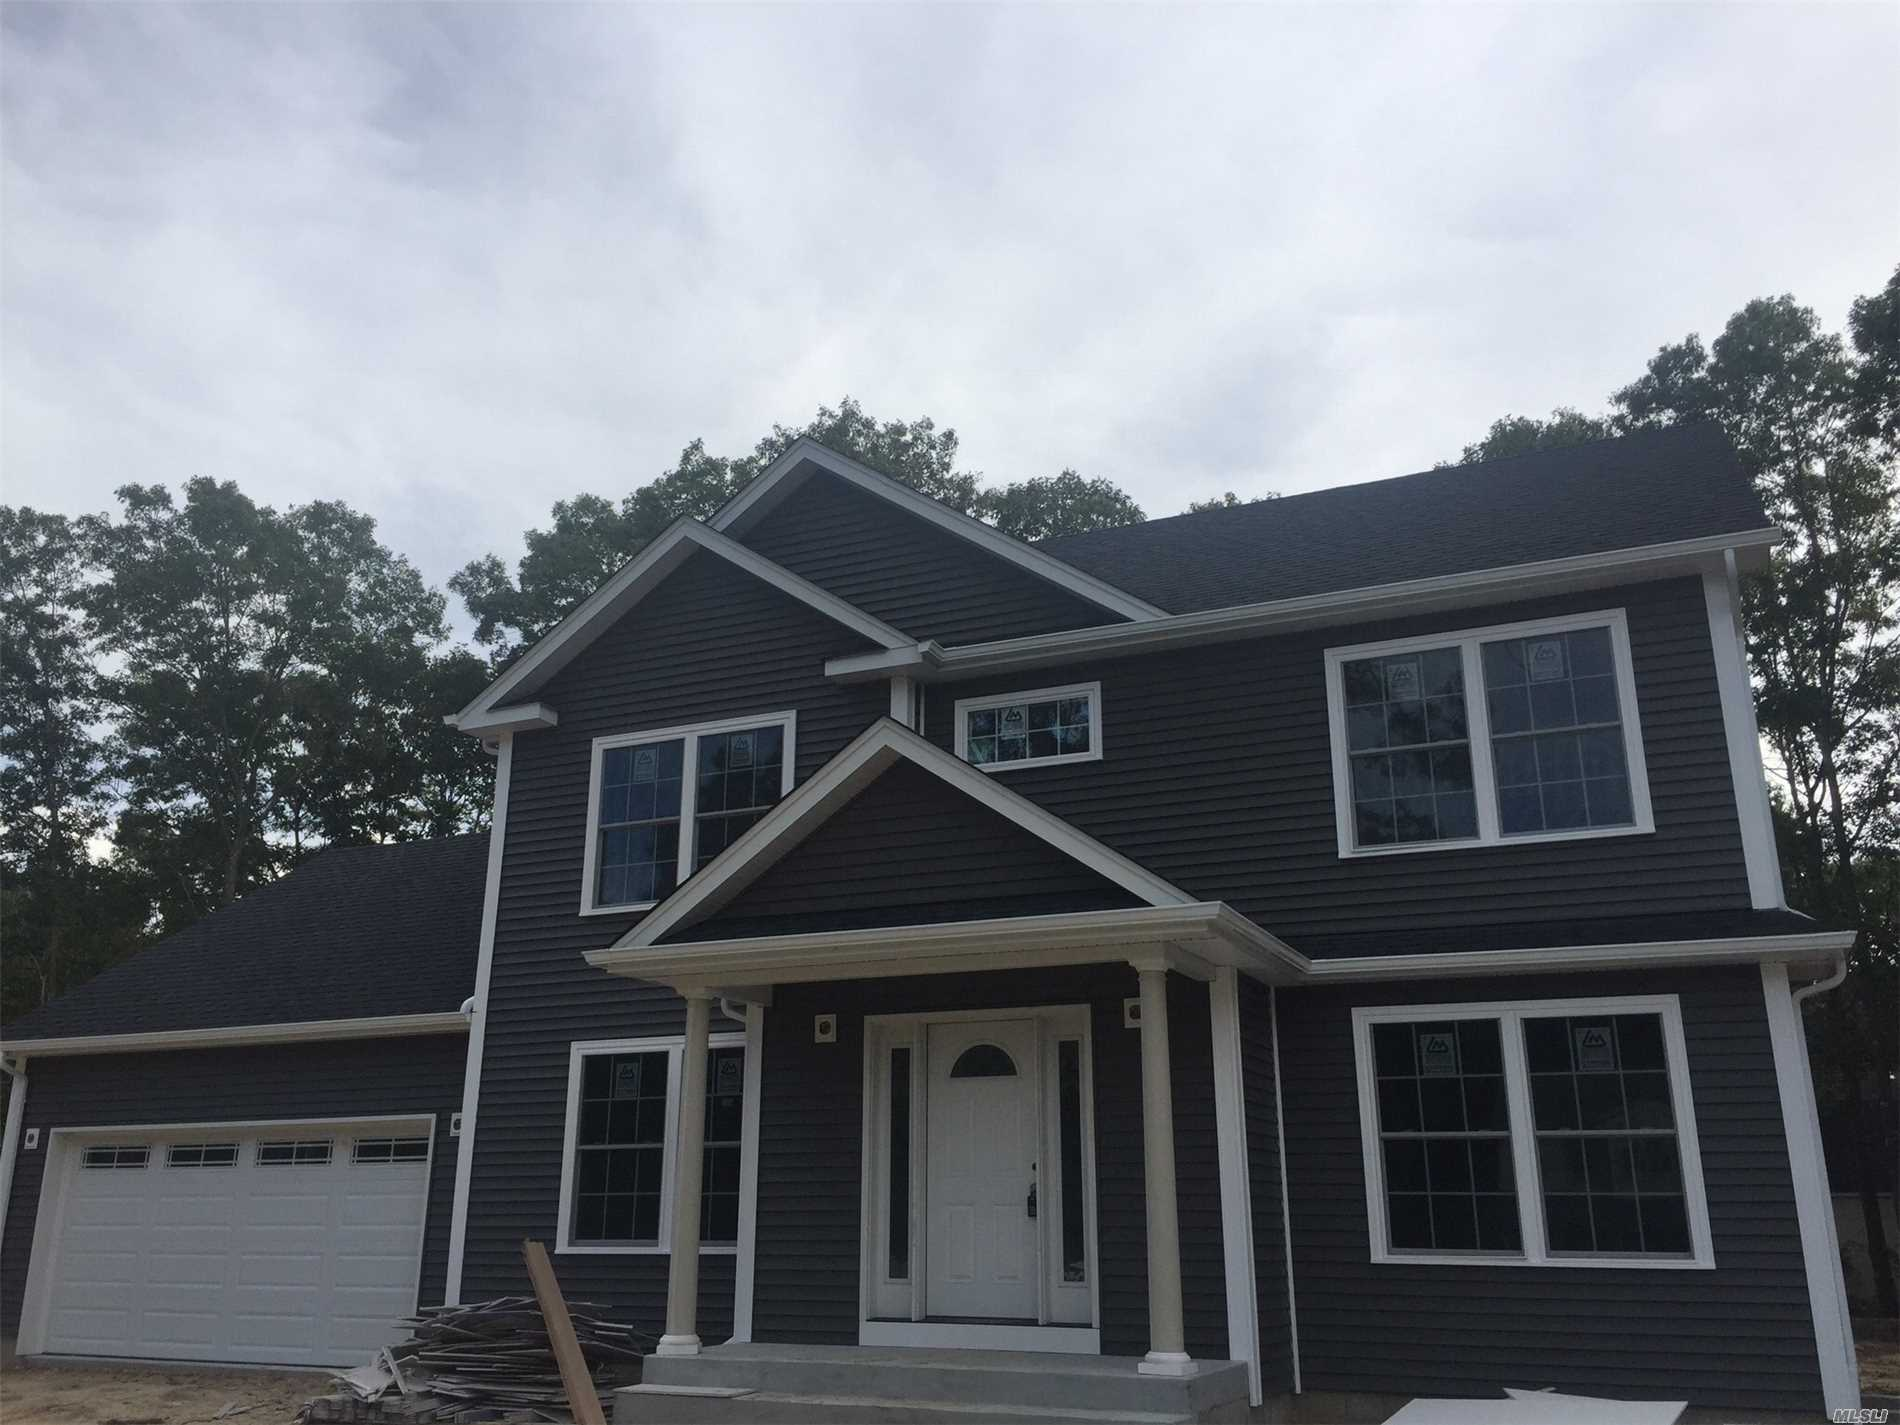 Your Chance To Own A New Home In The Esm School District. This 2100 Sqft Colonial Home Will Be Ready For Occupancy By The Fall. 2 Car Garage, 1/3 Acre Lot, Full Basement With Egress. Come Soon And Pick Your Colors